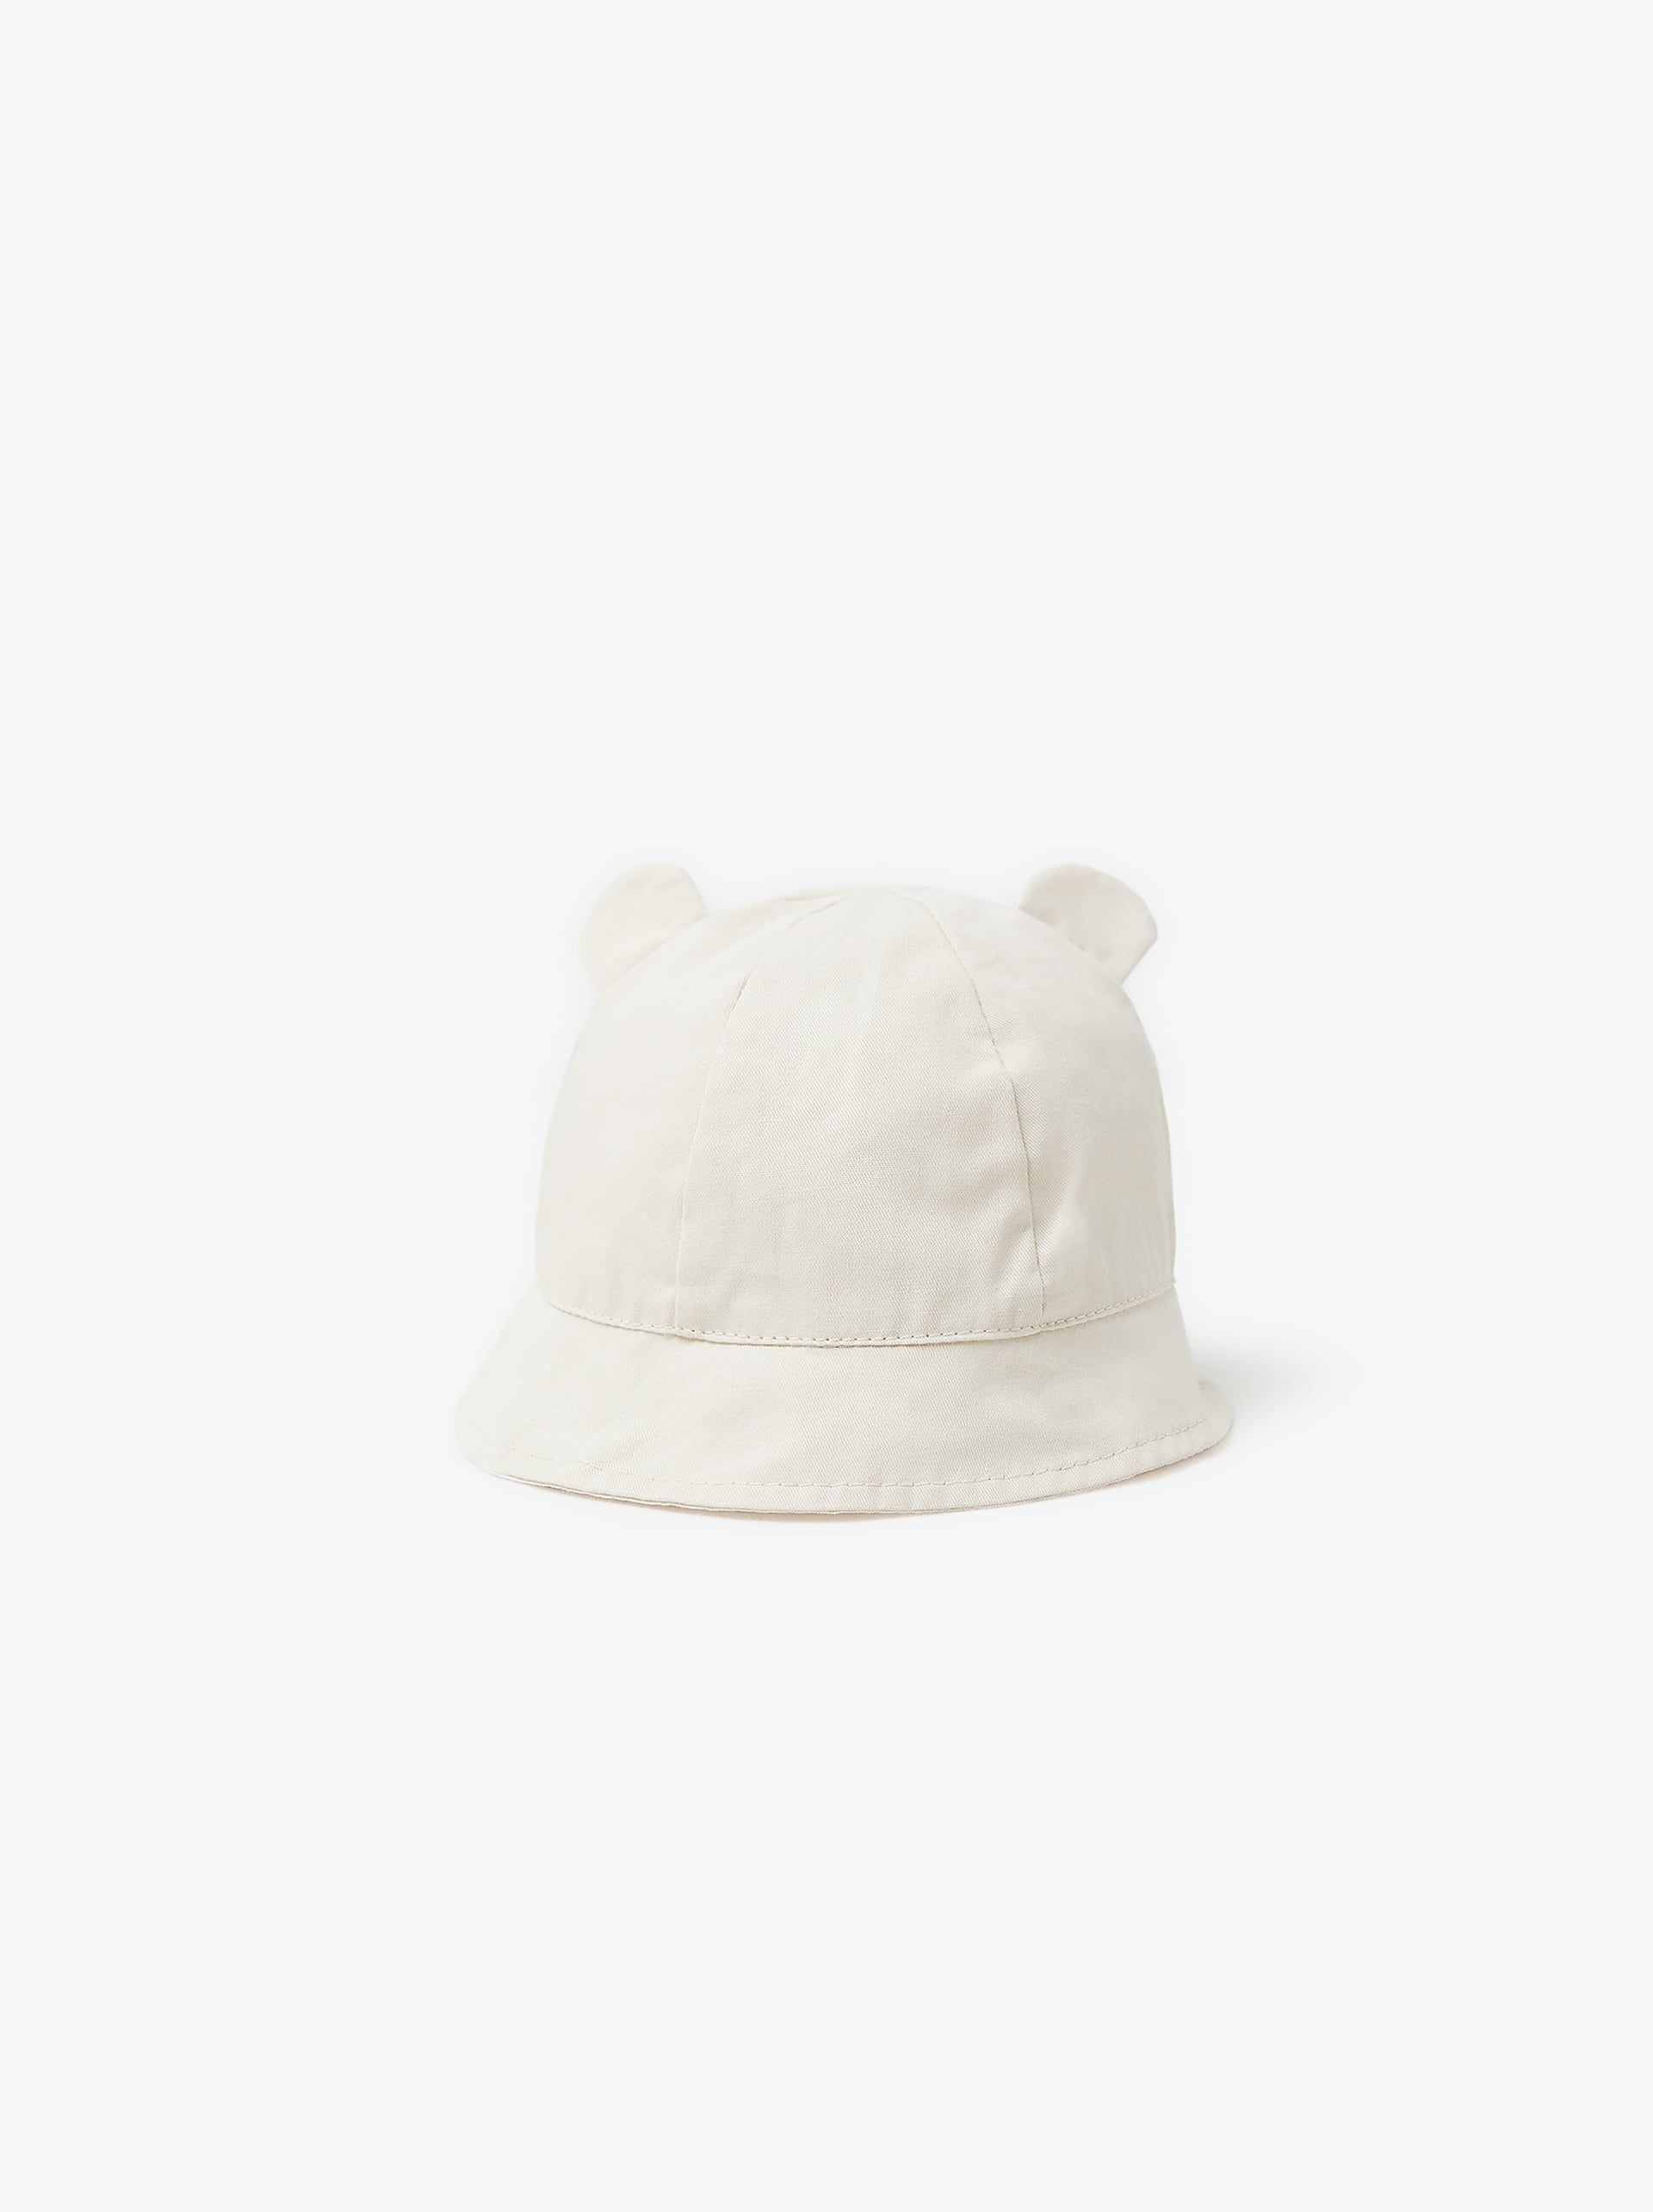 ed6c9e3c Gathered hat with ears | Bonnets and hats | Ear hats, Hats, Baseball ...